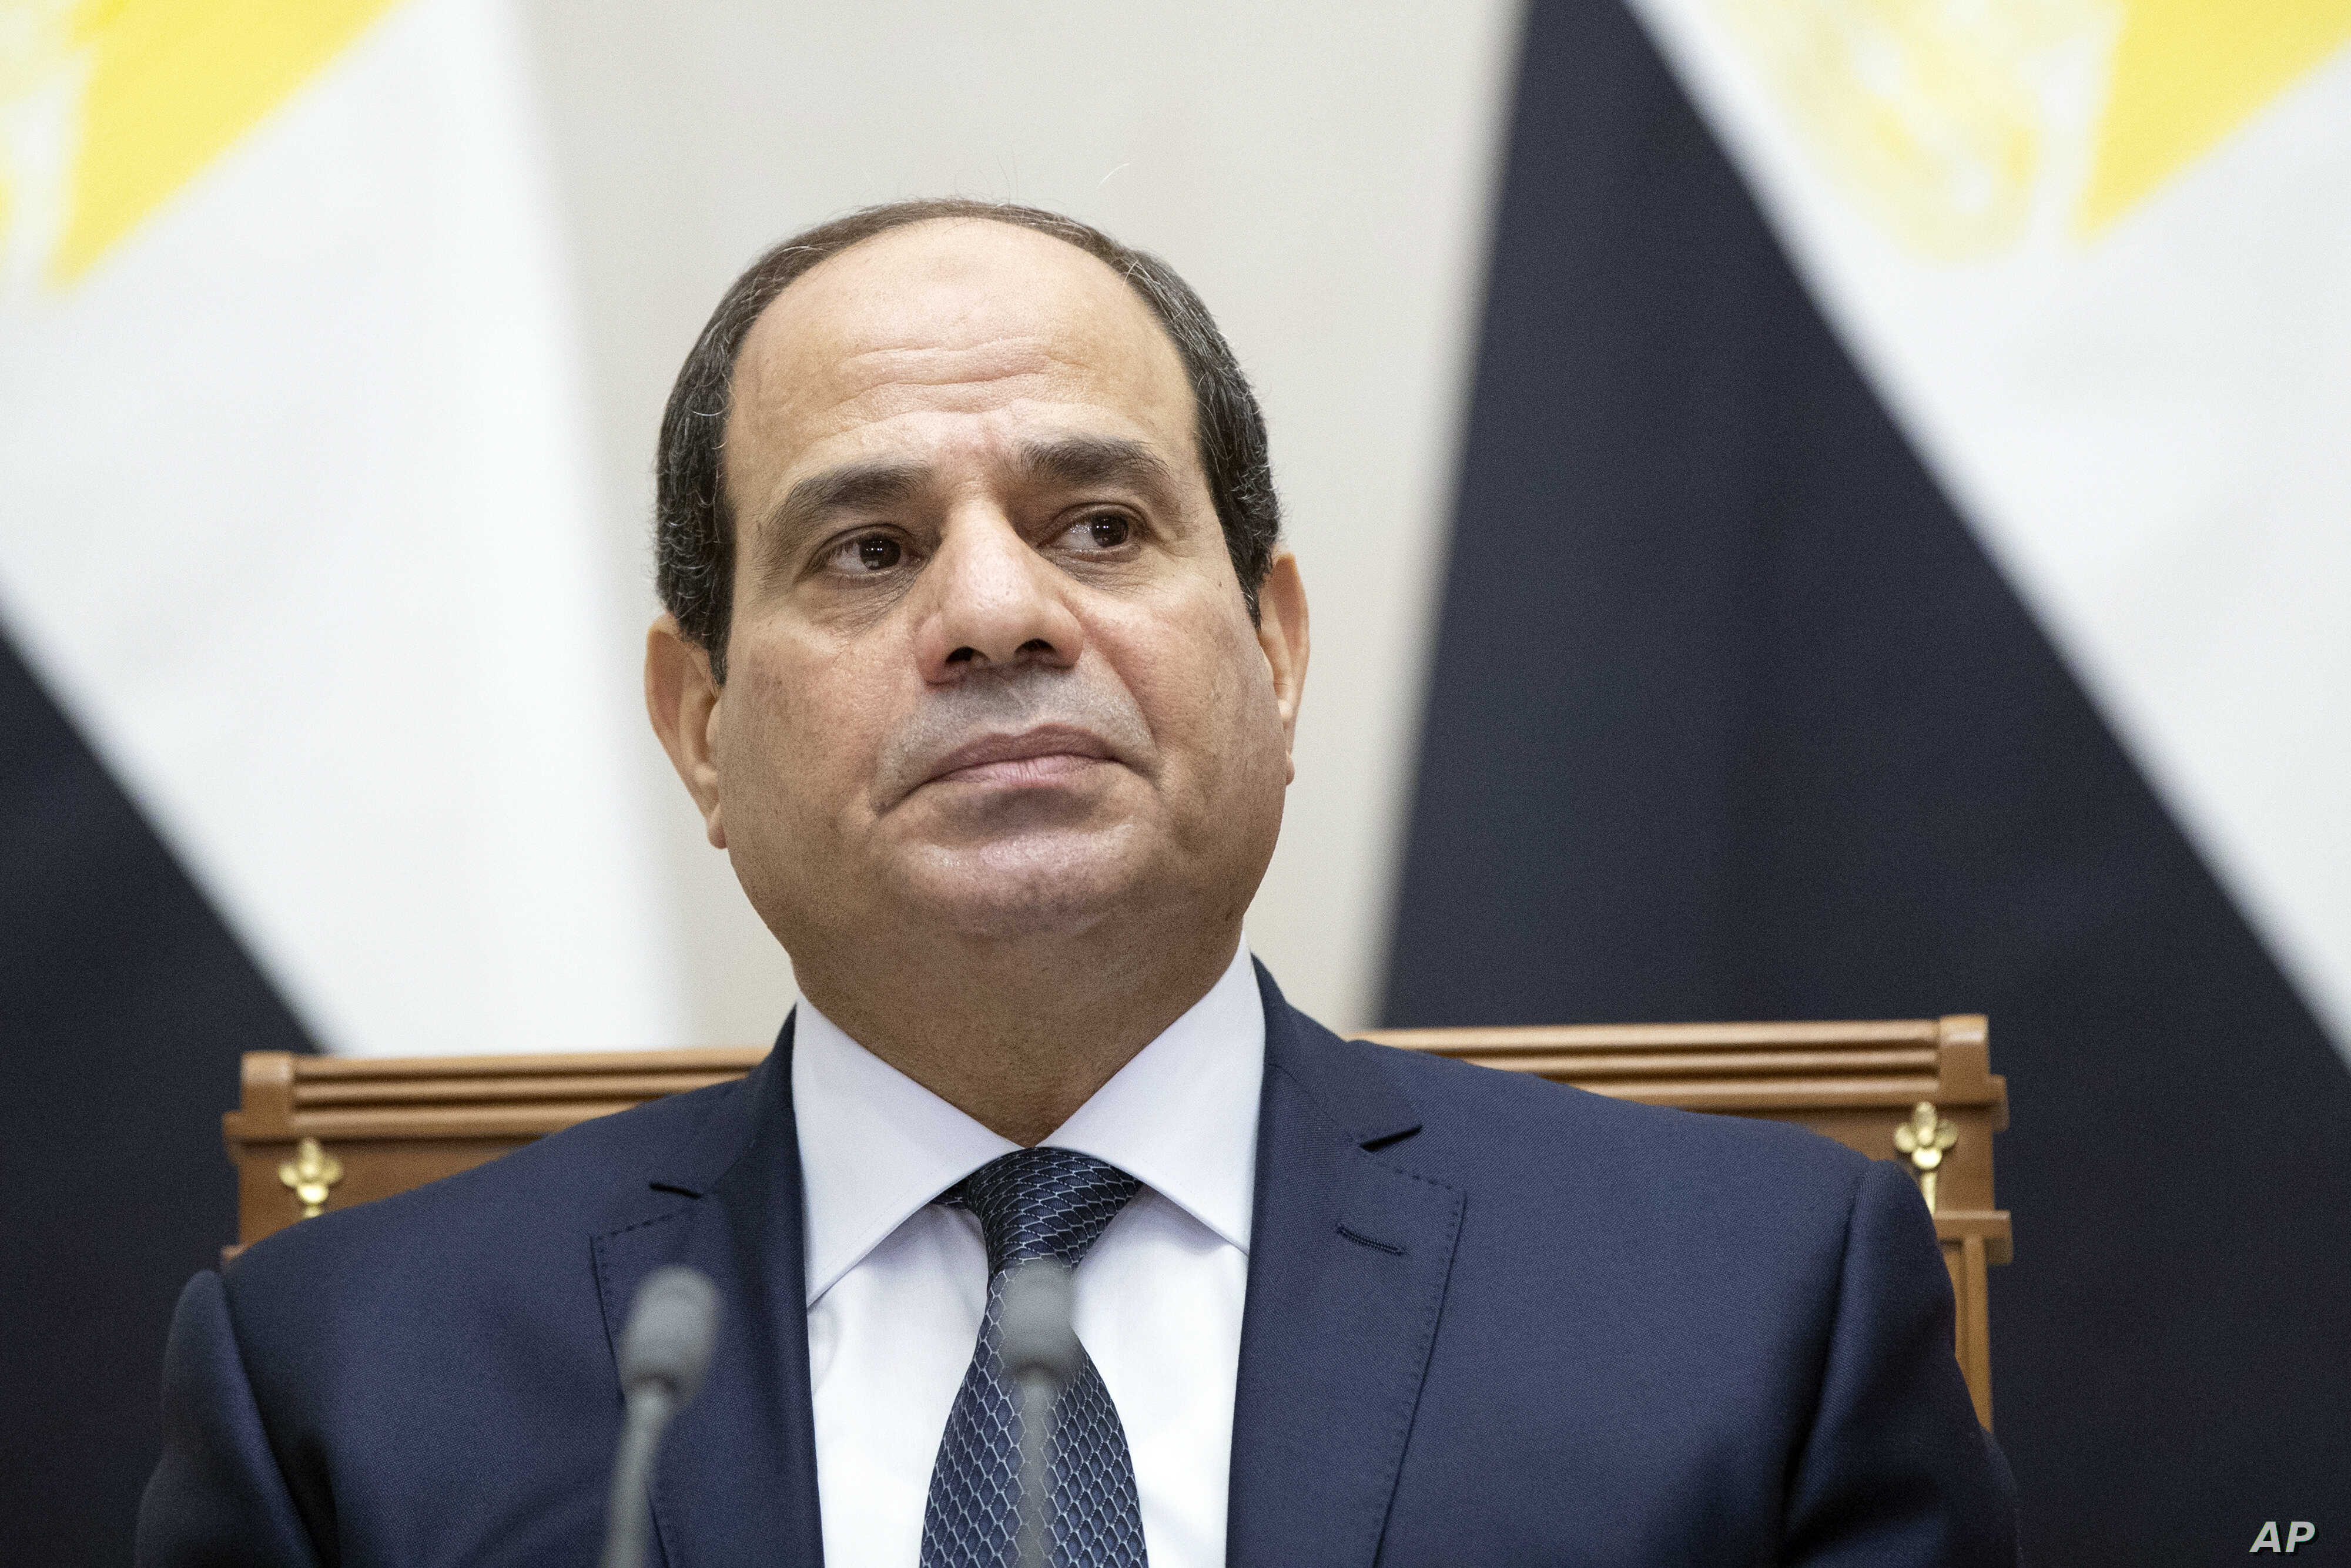 Egyptian President Abdel-Fattah el-Sissi attends a signing ceremony  with Russian President Vladimir Putin in Sochi, Russia, Oct. 17, 2018. Shaymaa Afifi, the wife of Mustafa el-Nagar, a former Egyptian lawmaker, says her husband went missing nearly